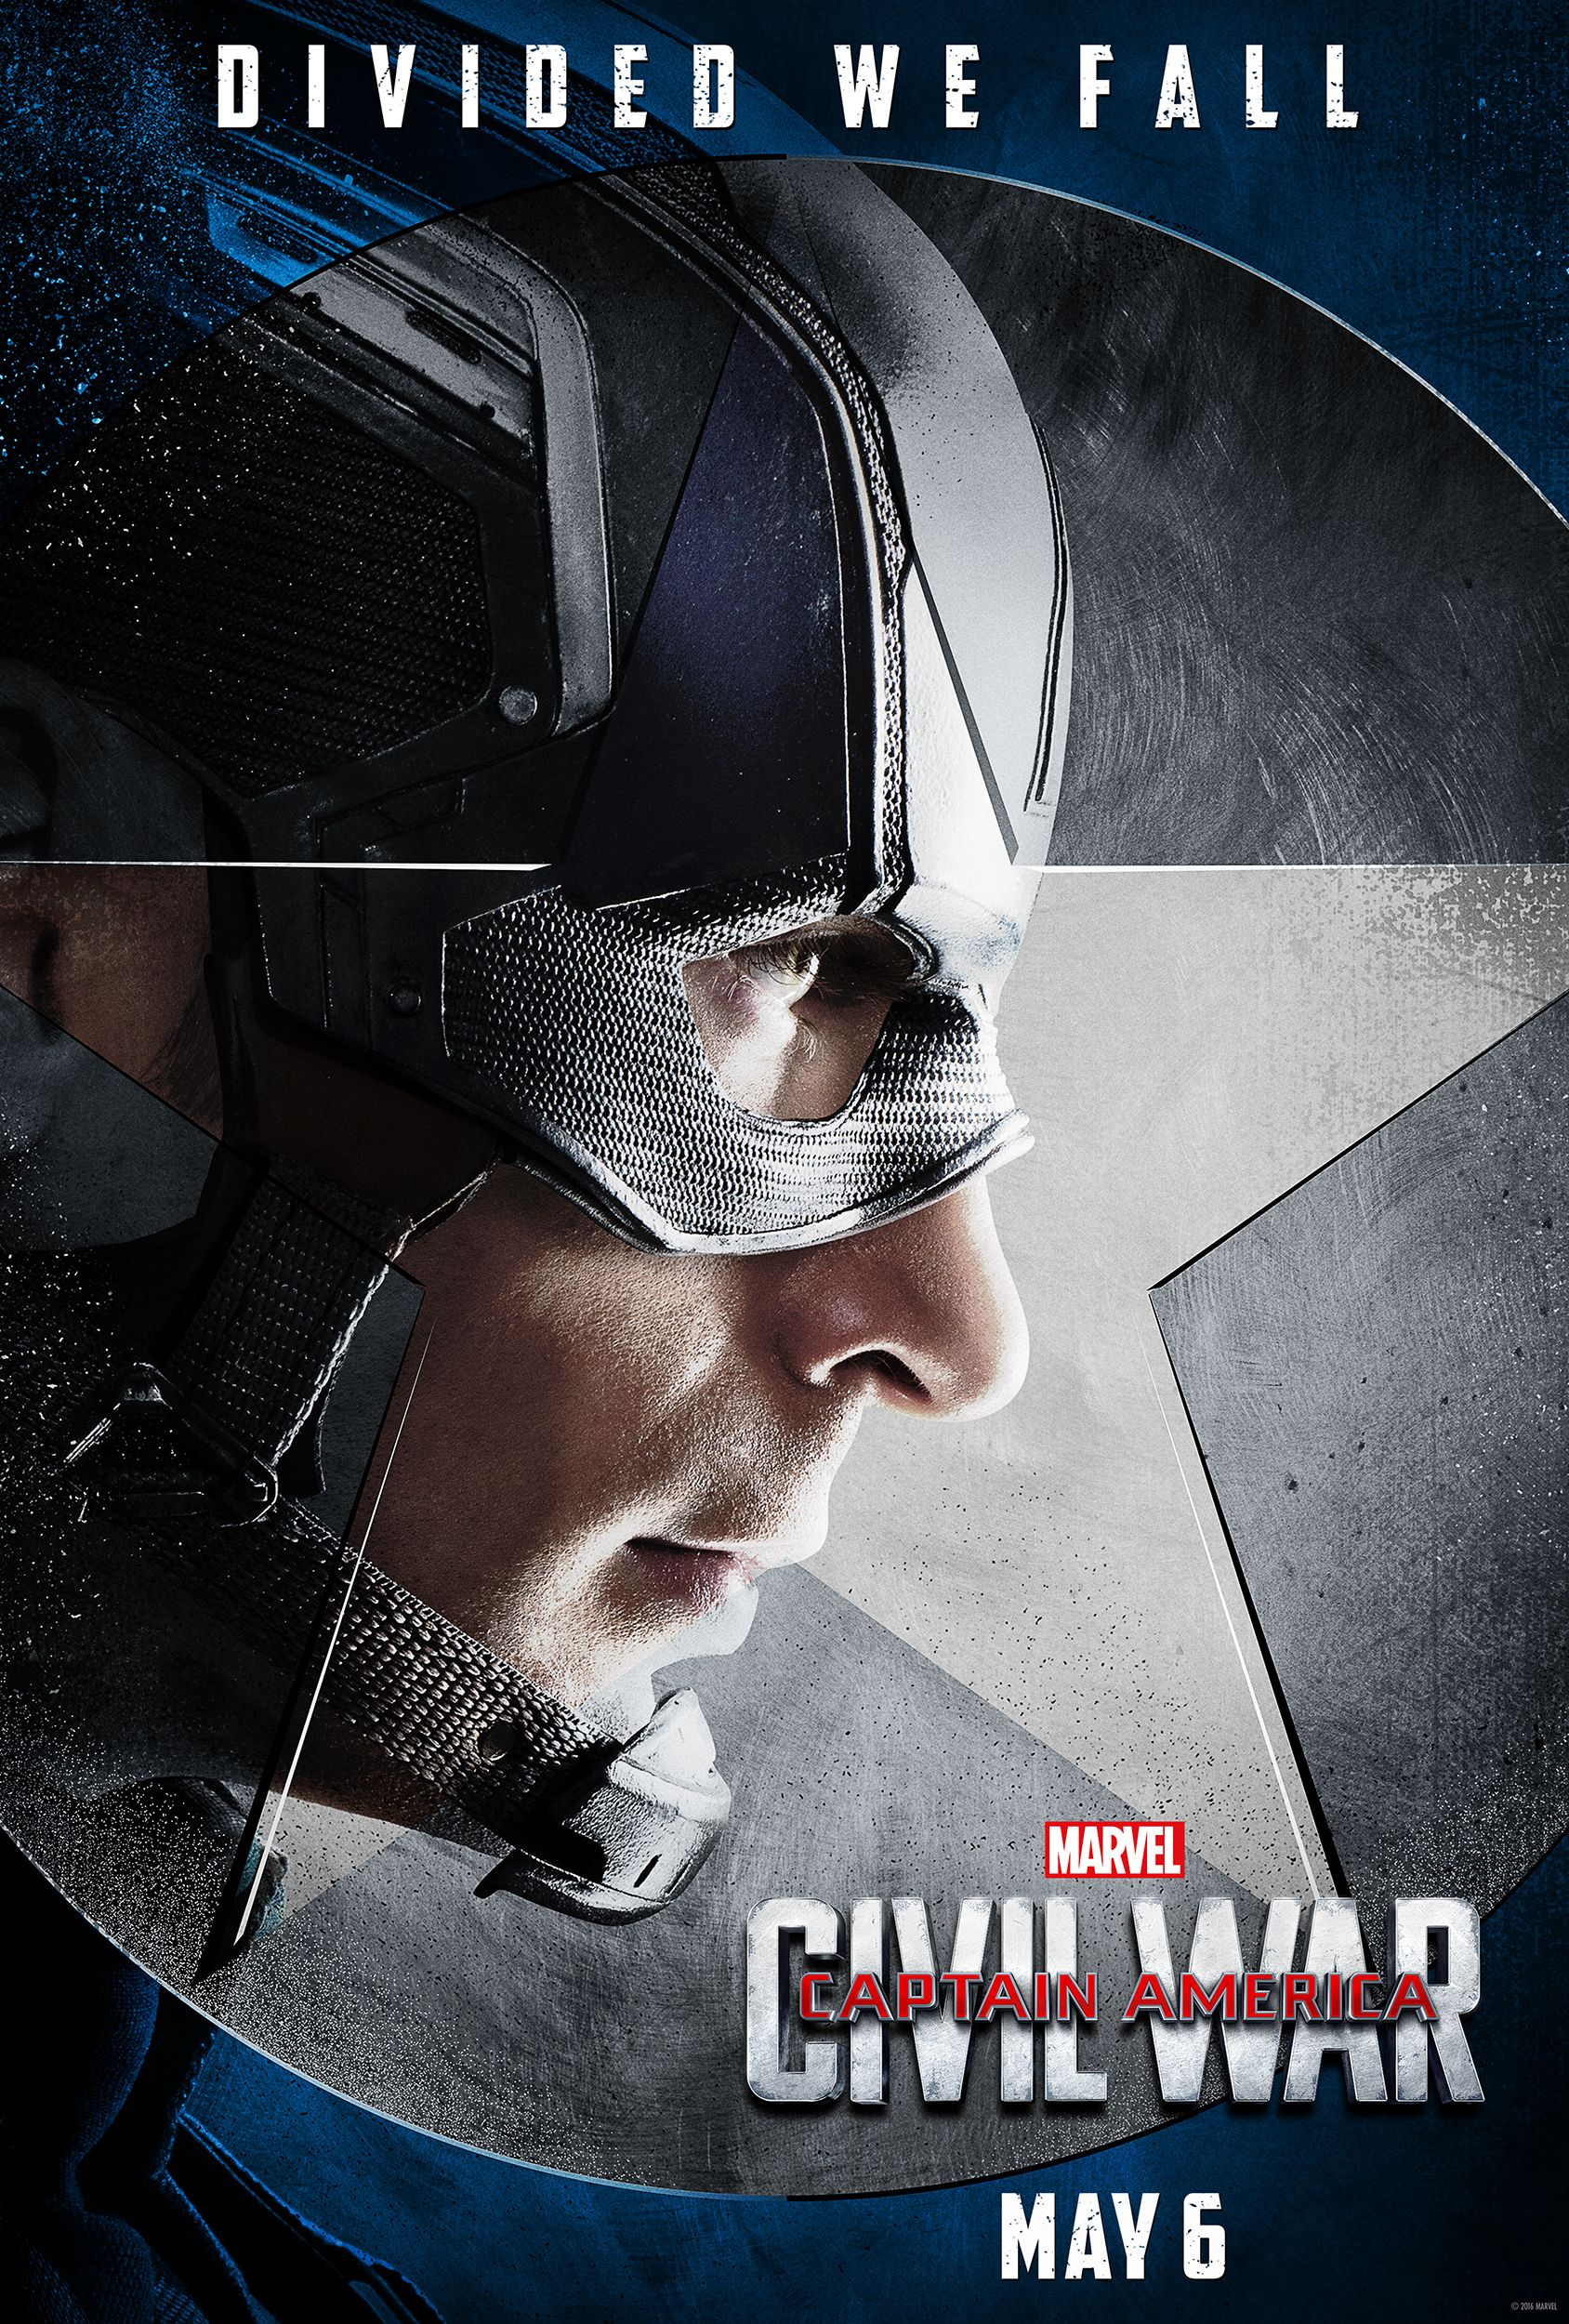 http://cdn.collider.com/wp-content/uploads/2016/03/captain-america-civil-war-cap-poster.jpg